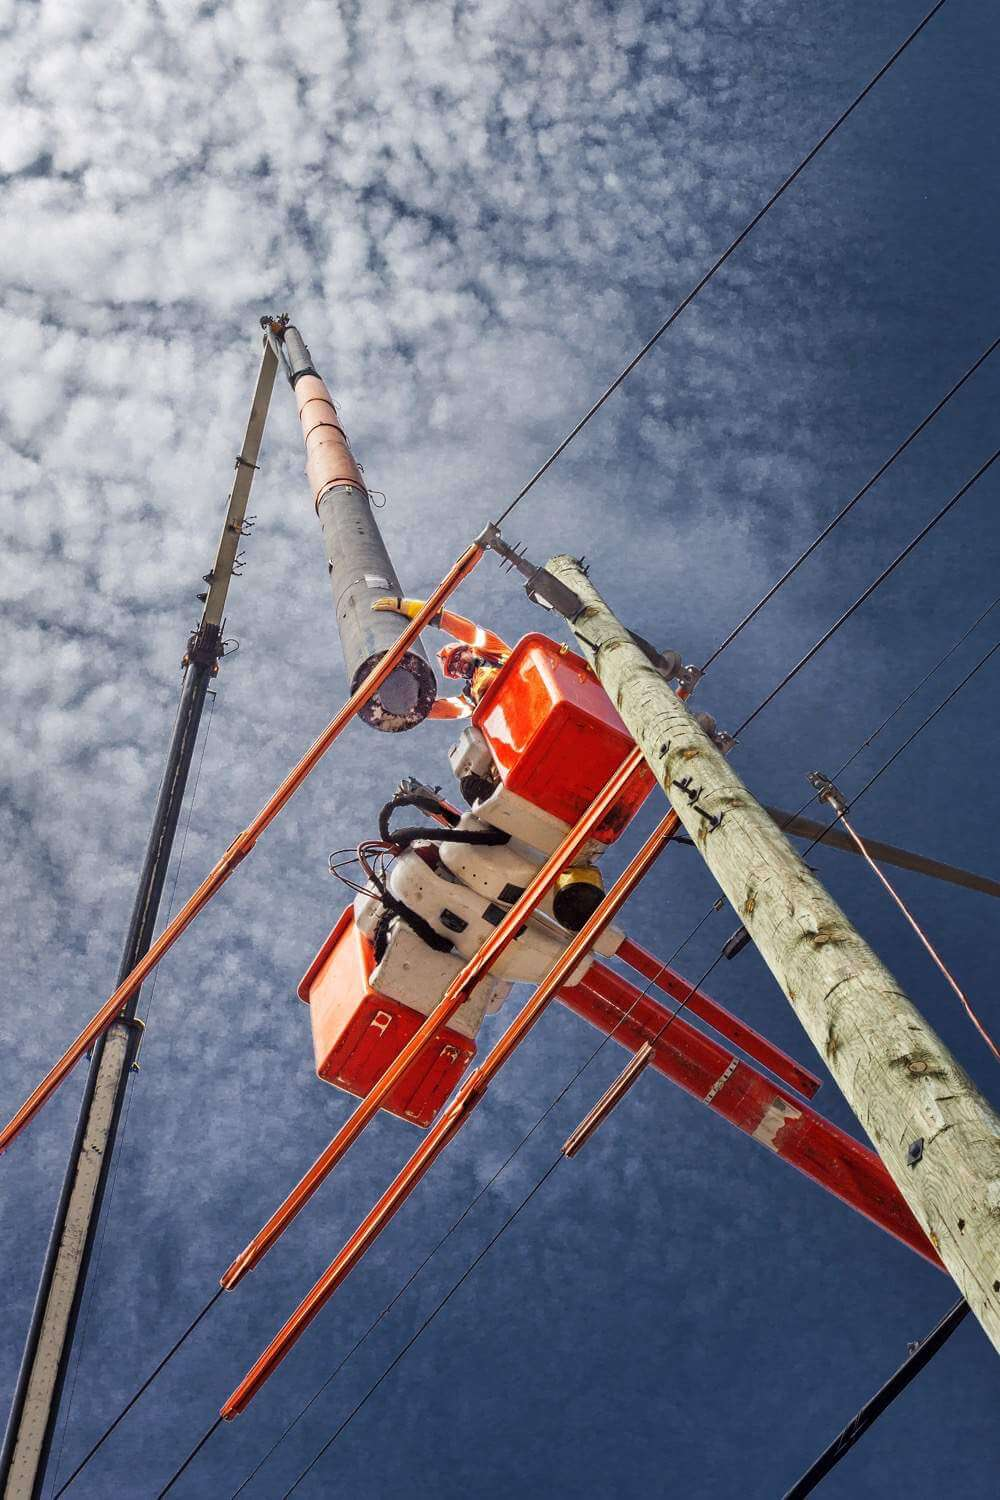 Worker assisting in lowering a pole from above